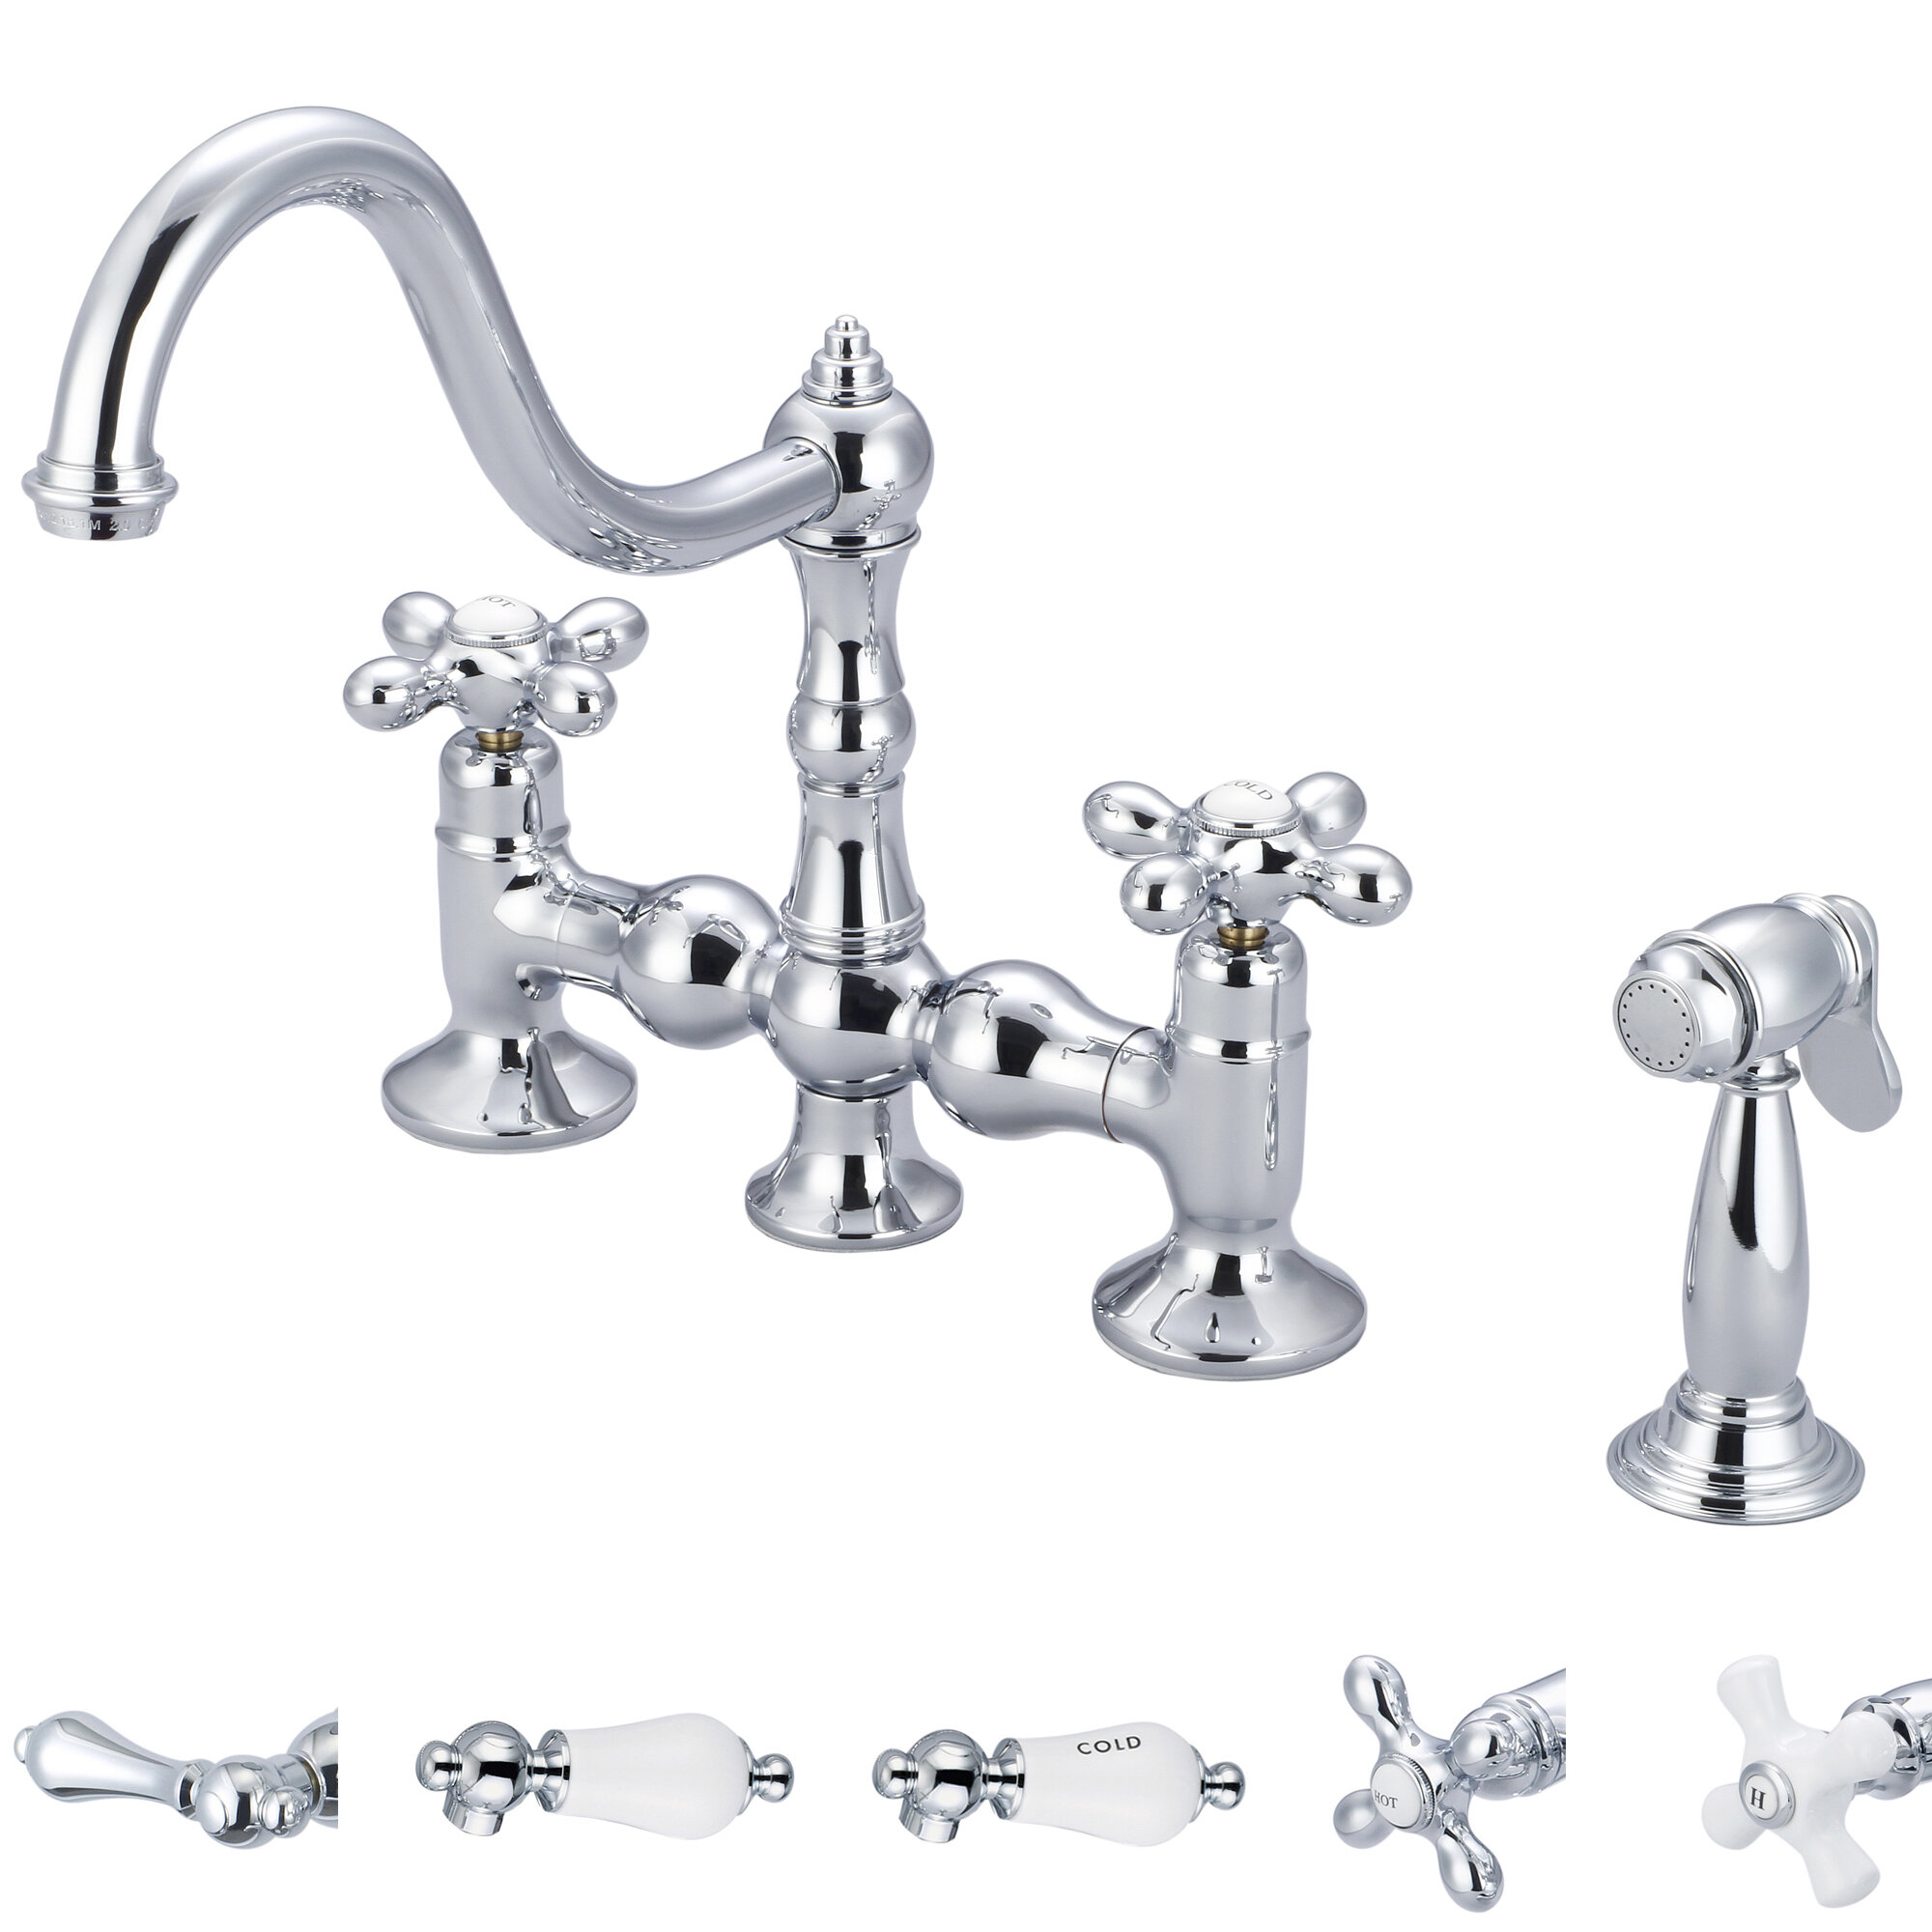 delta of commercial with unique parts padlords faucet inspiring direct us bathroom sprayer design for